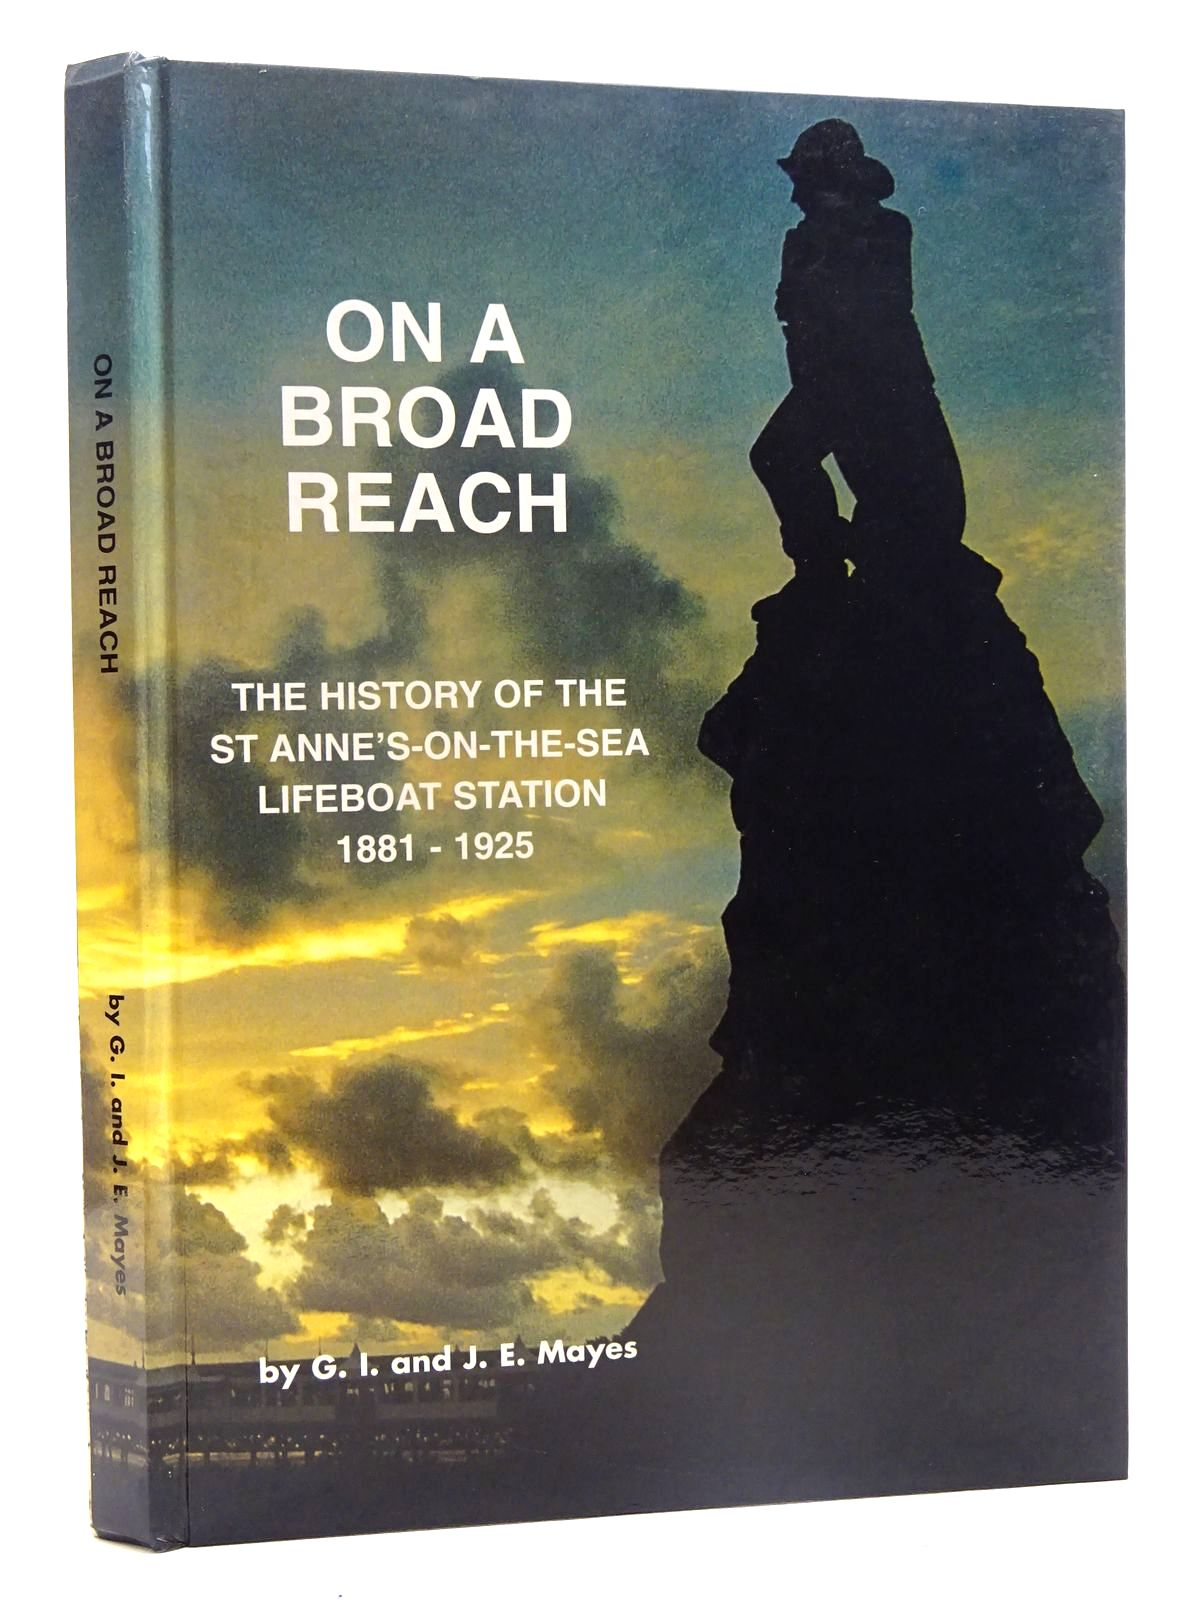 Photo of ON A BROAD REACH THE HISTORY OF THE ST ANNE'S-ON-THE-SEA LIFEBOAT STATION 1881 - 1925 written by Mayes, Gilbert I. Mayes, J.E. published by Bernard McCall (STOCK CODE: 2125464)  for sale by Stella & Rose's Books